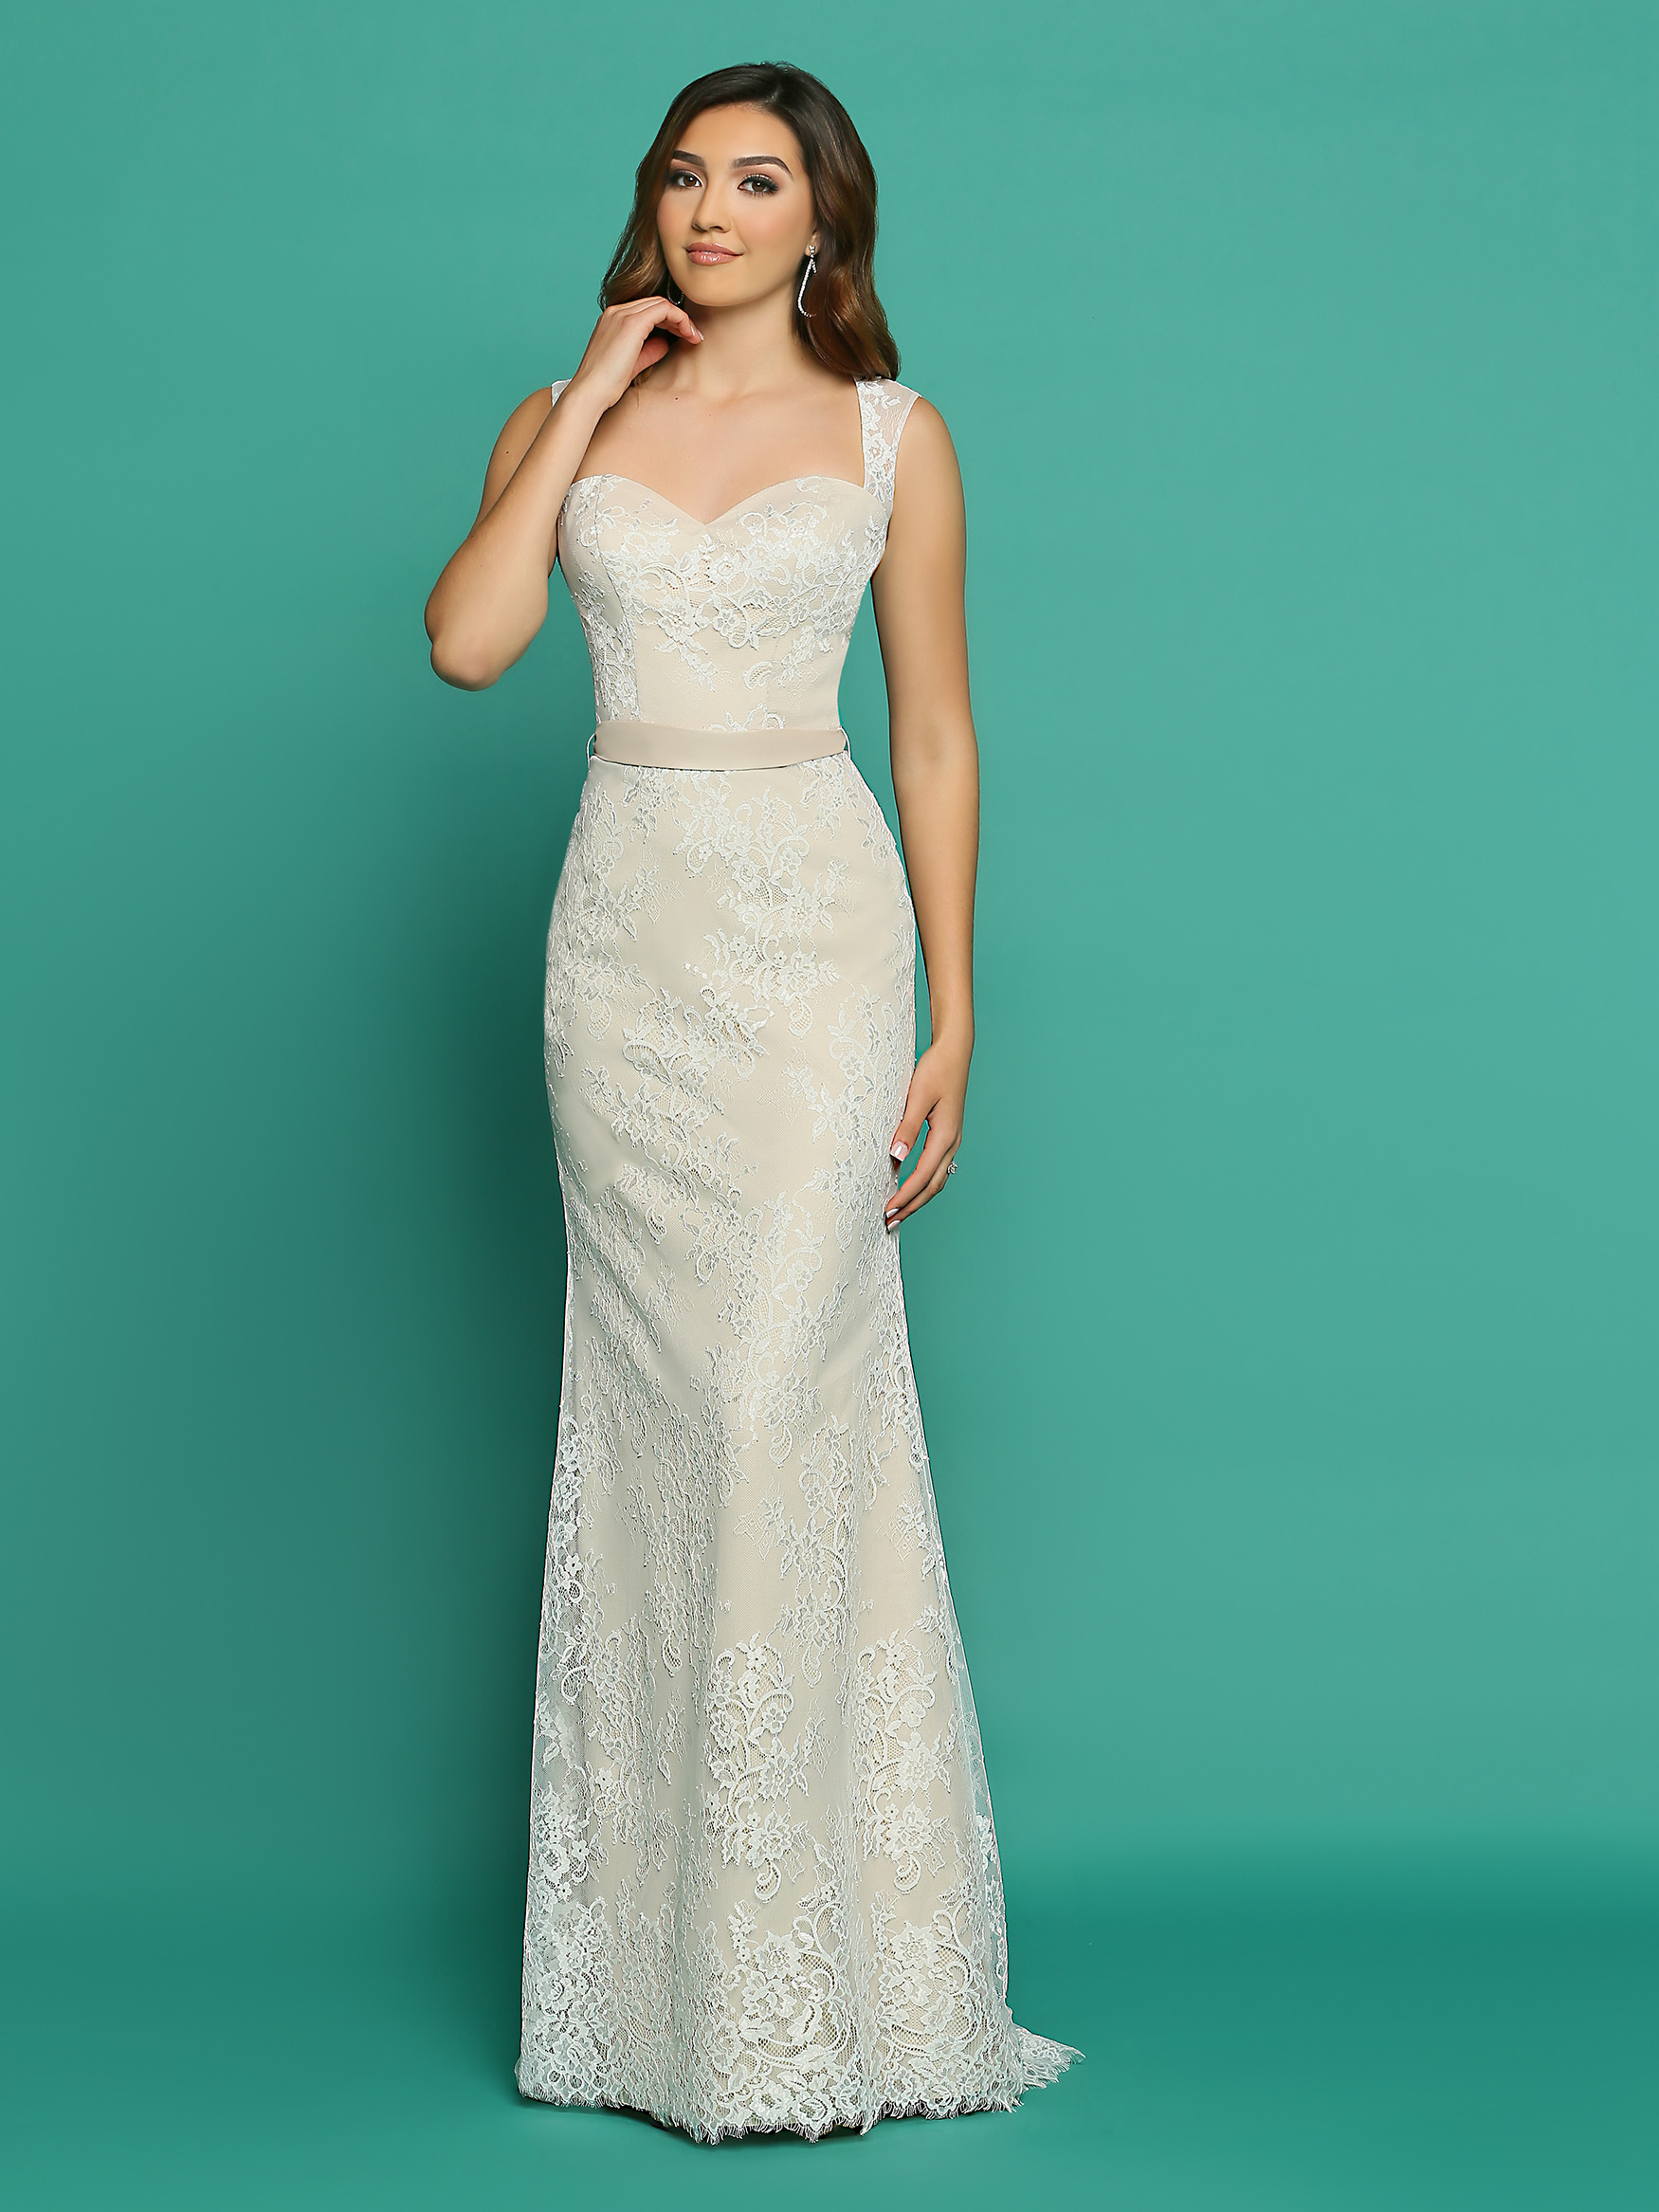 Informal By DaVinci | DaVinci Bridal